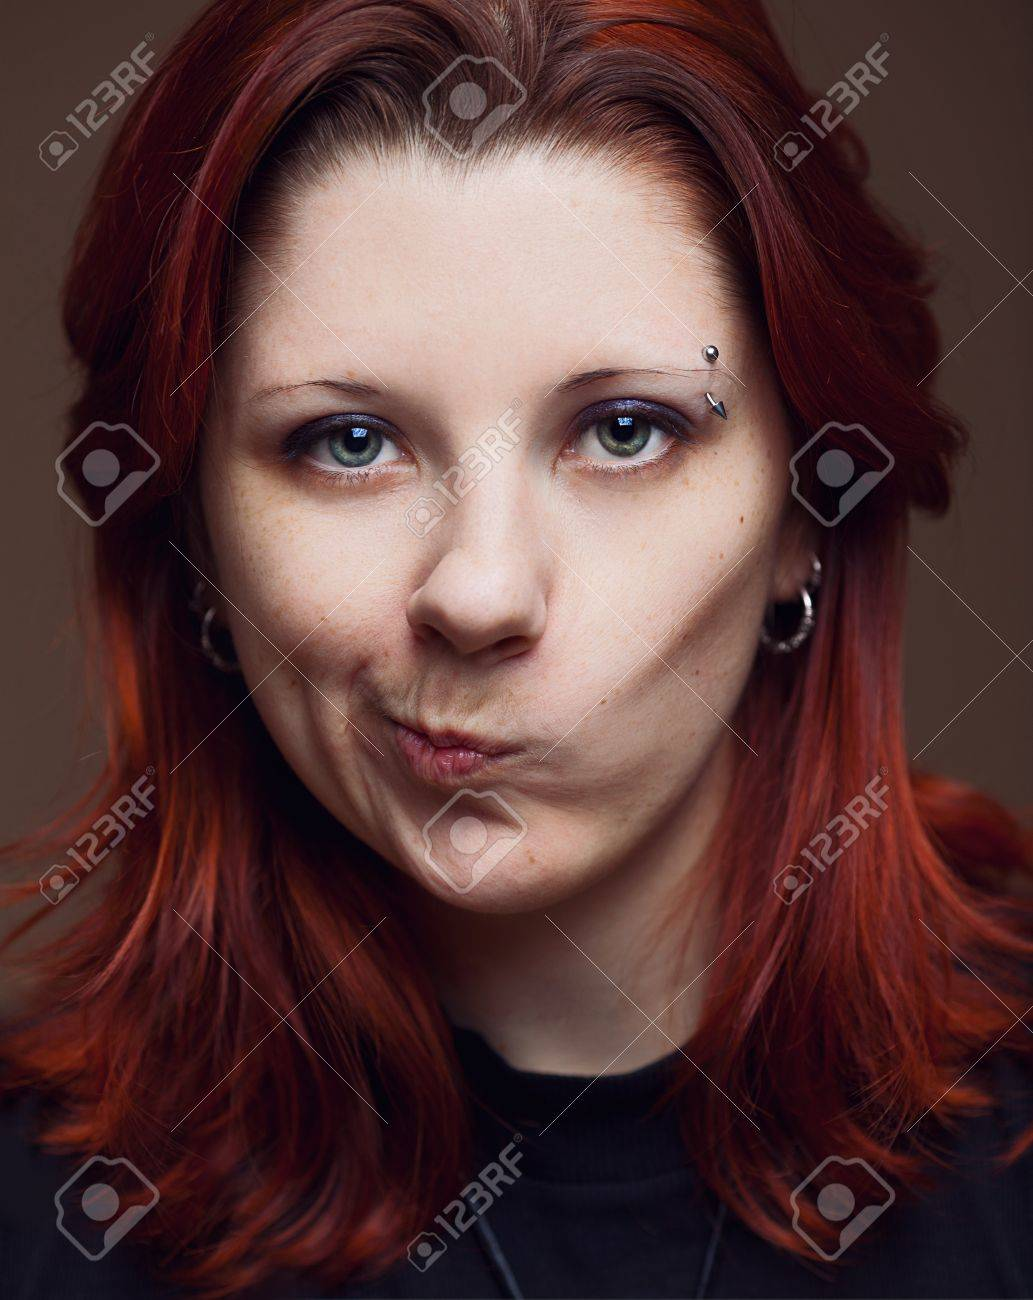 Strange emotion on young woman's face Stock Photo - 12658983